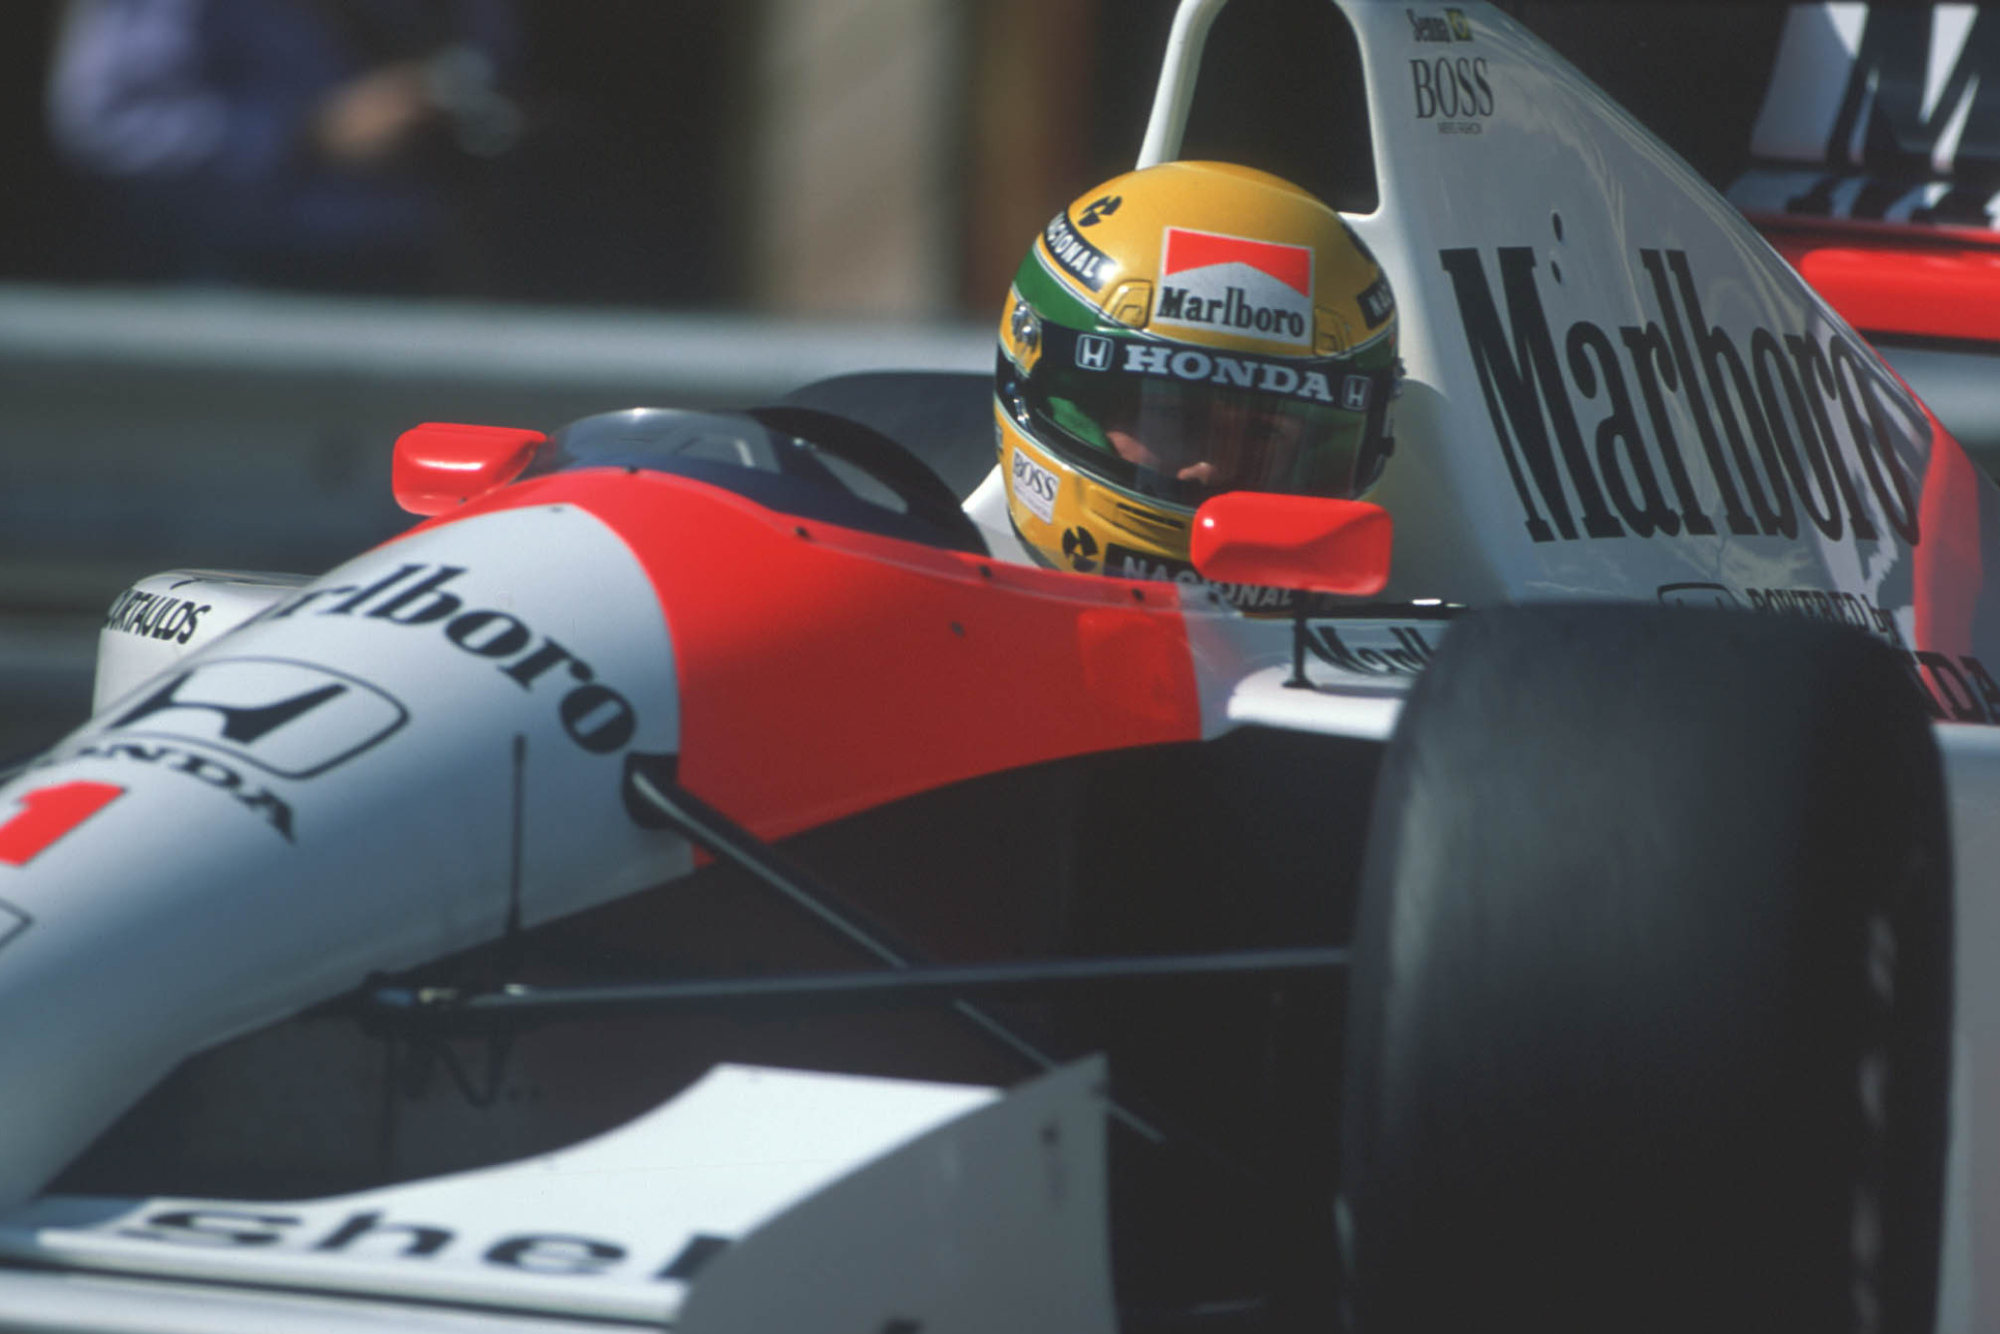 Ayrton Senna in the McLaren